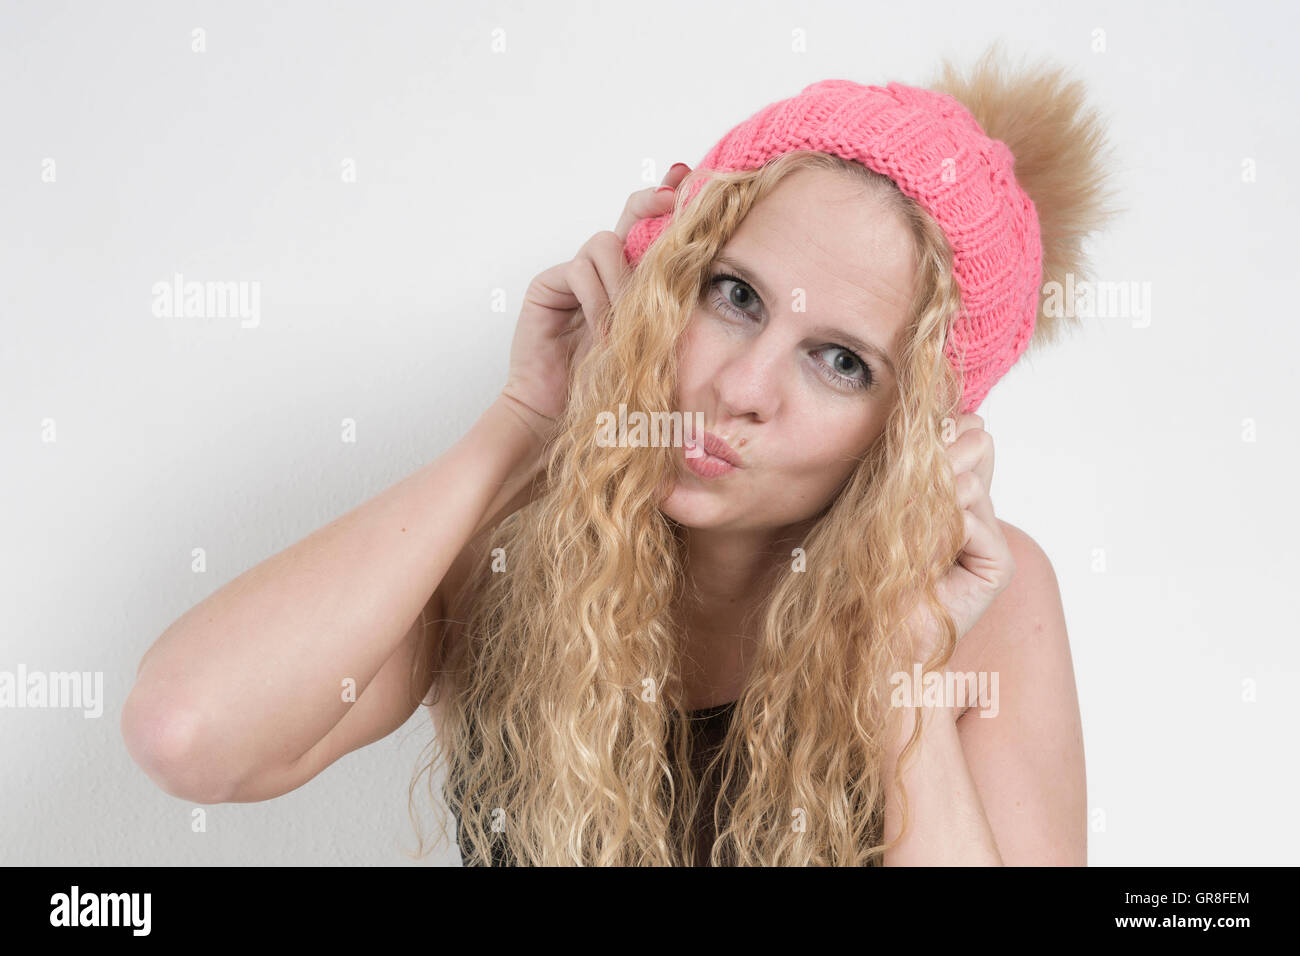 Portrait Shot Of A Young Woman With Long Blond Hair And Knit Cap, The Grimaces Cuts - Stock Image